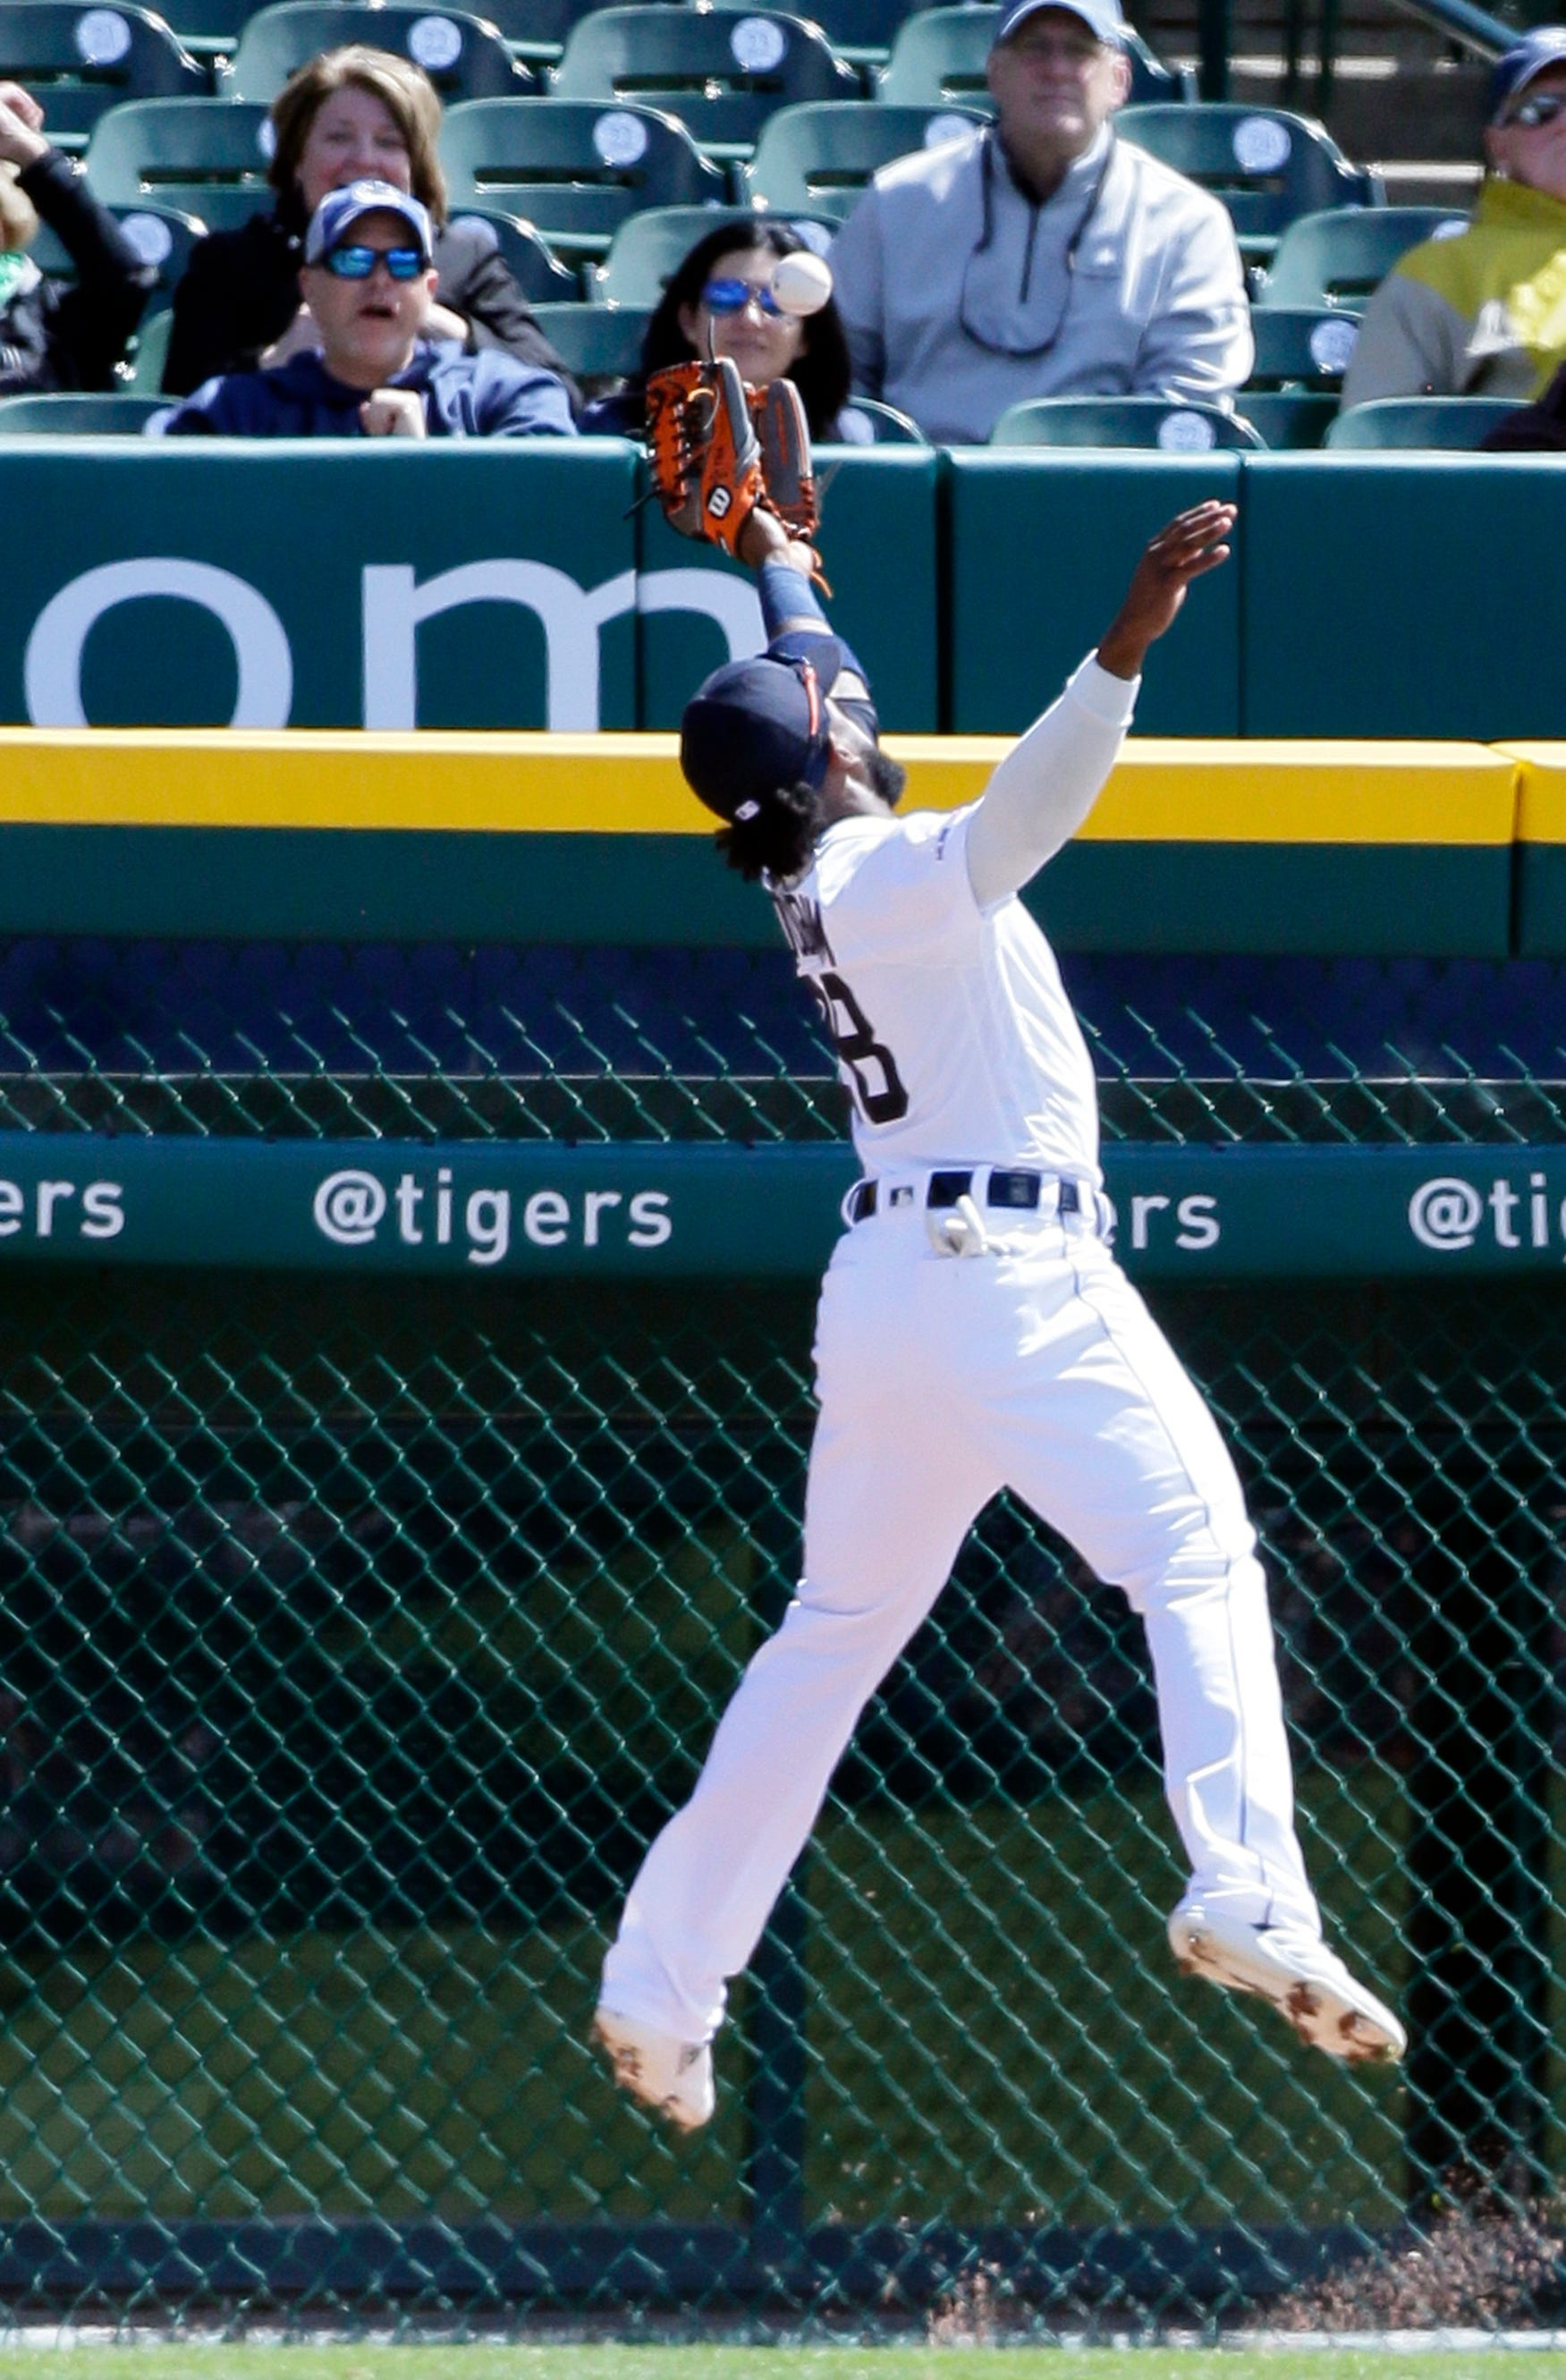 Tigers left fielder Niko Goodrum can't catch a double hit by Indians center fielder Tyler Naquin during the second inning on Tuesday, April 9, 2019, at Comerica Park.